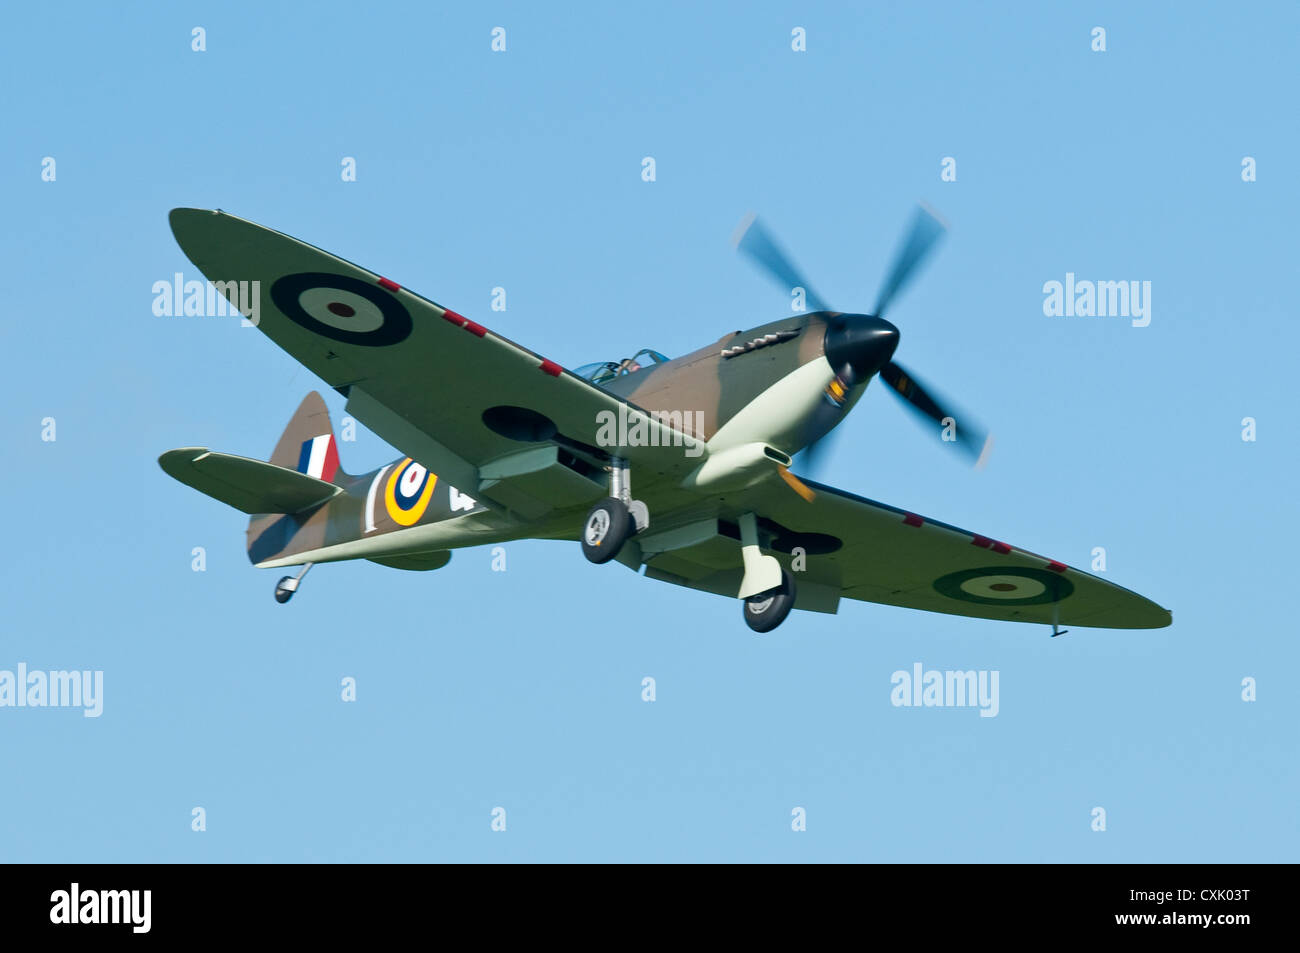 Spitfire with Undercarriage Down Coming Into Land - Stock Image